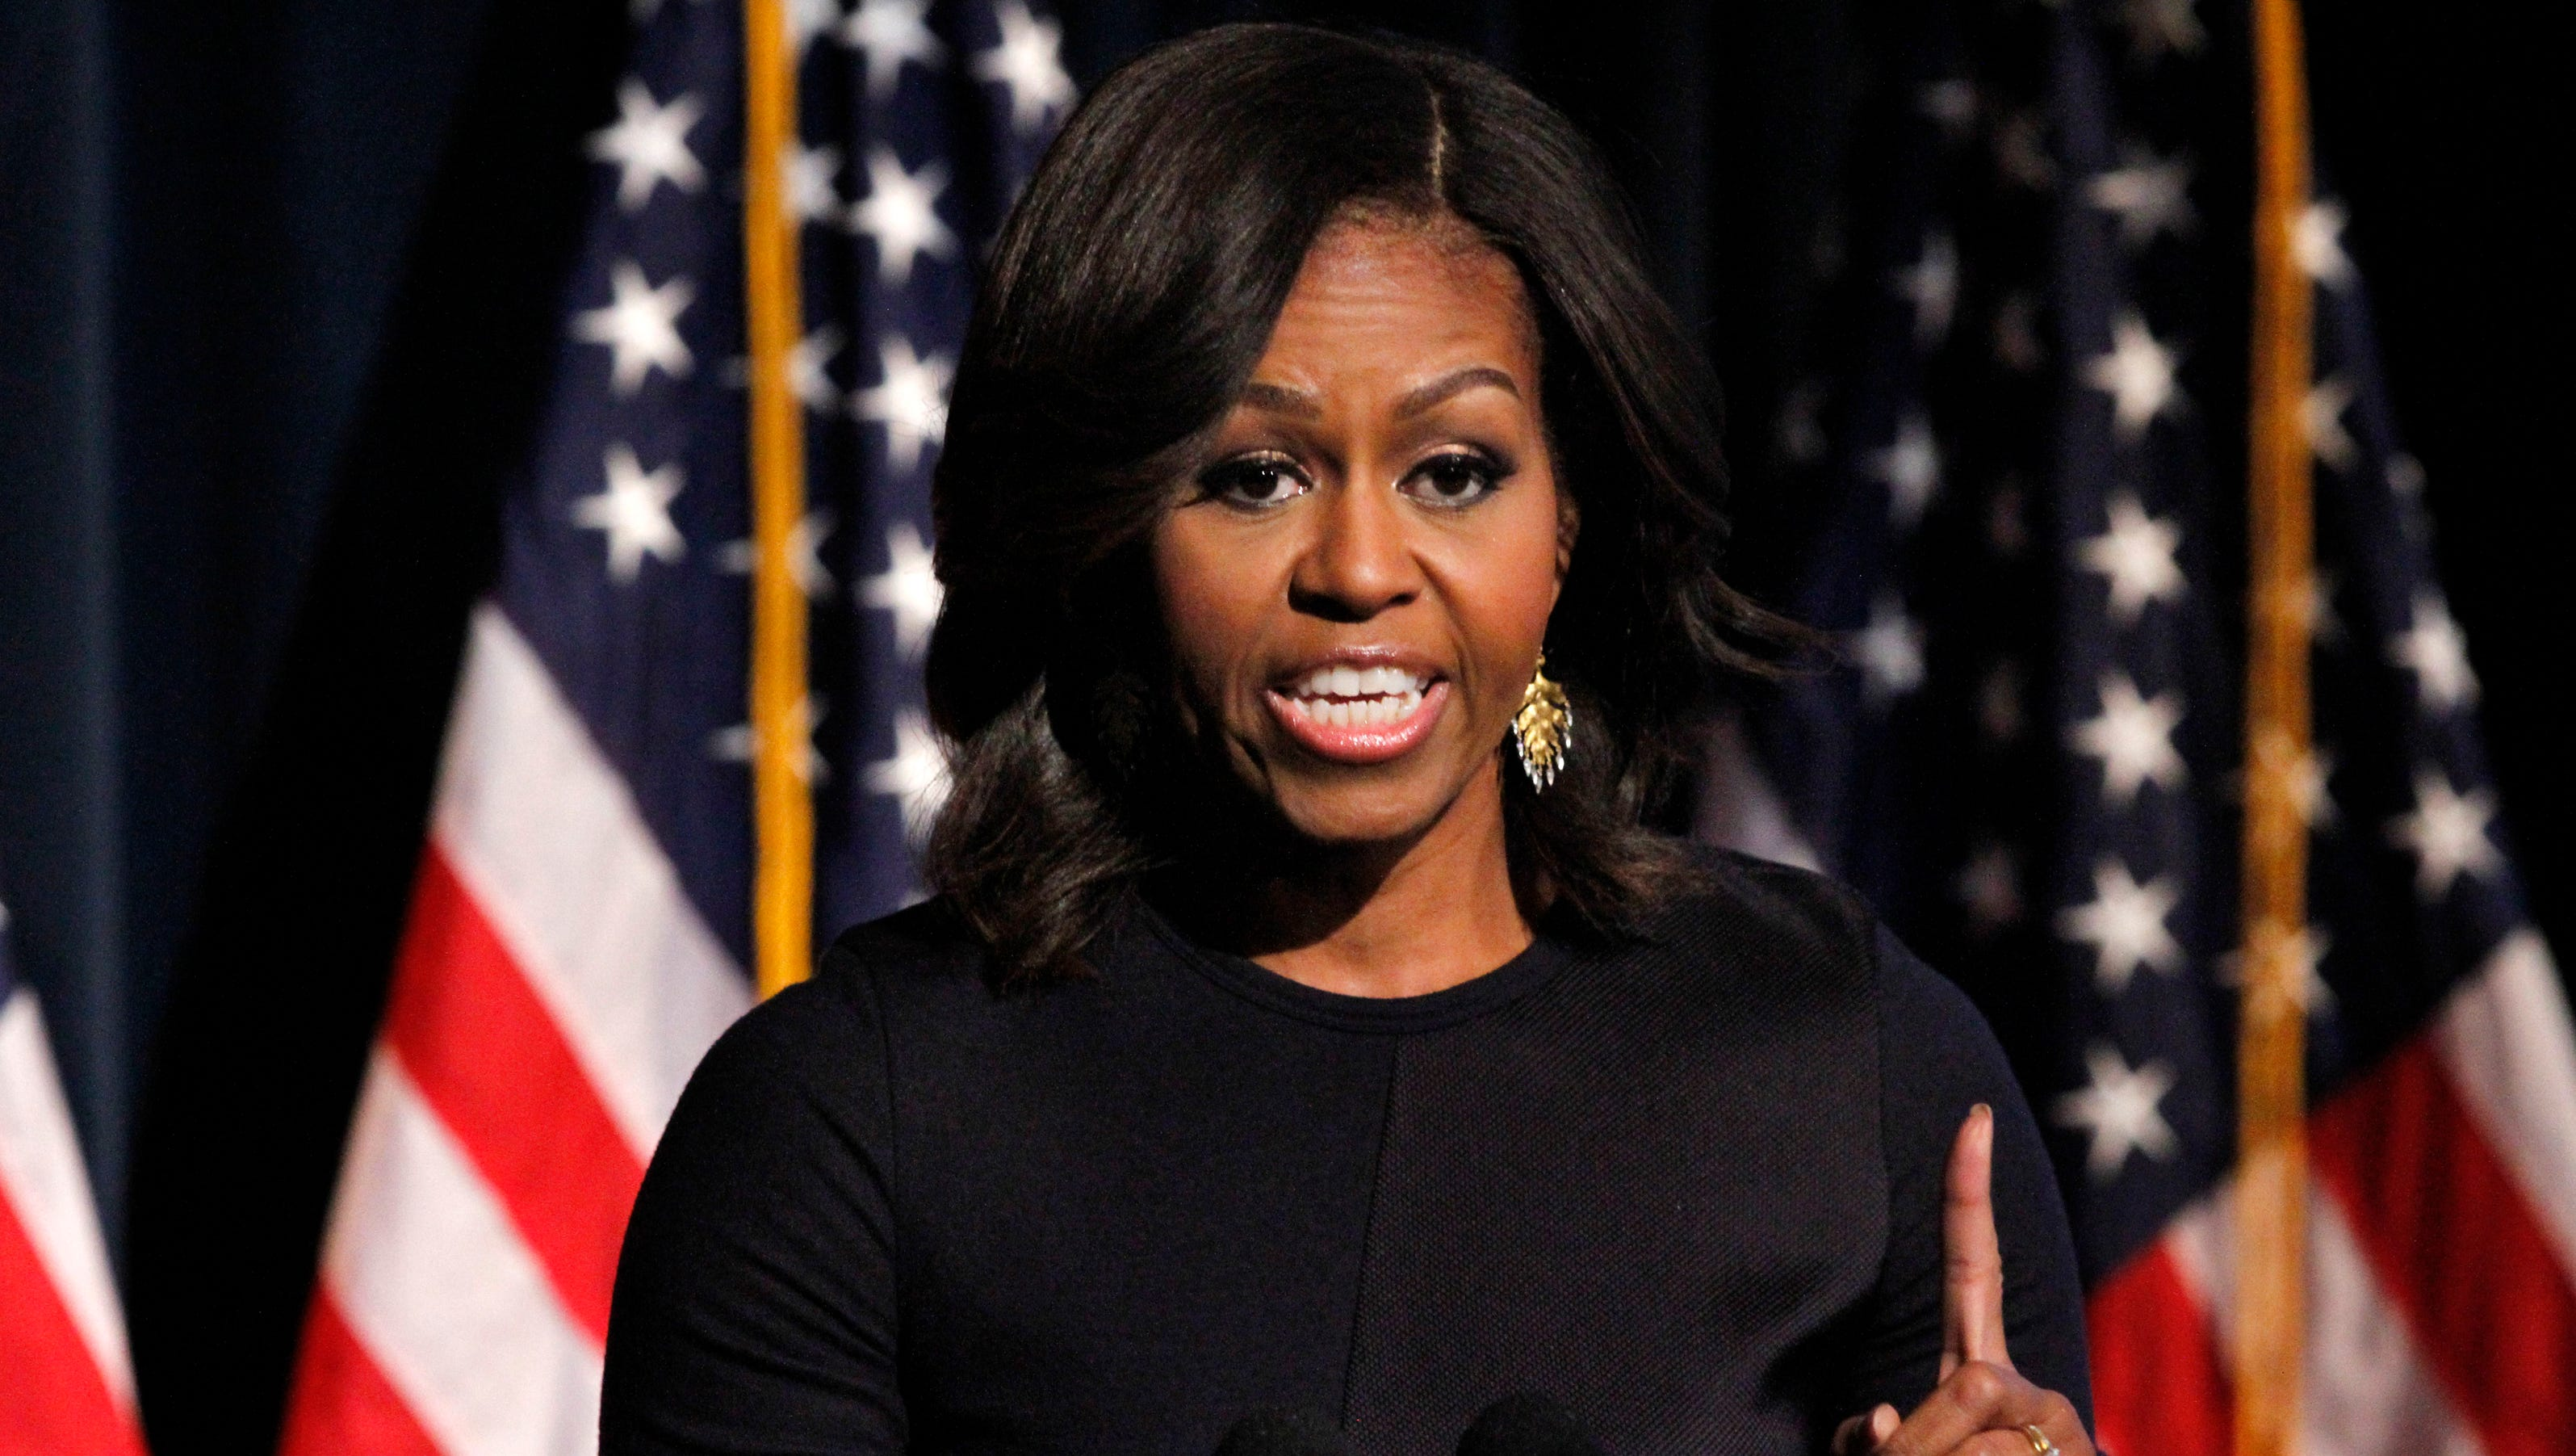 michele robinson thesis Learning to be michelle obama  obama's questions became, in part, the subject of her senior thesis, called princeton-educated blacks and the black community  for young michelle robinson.